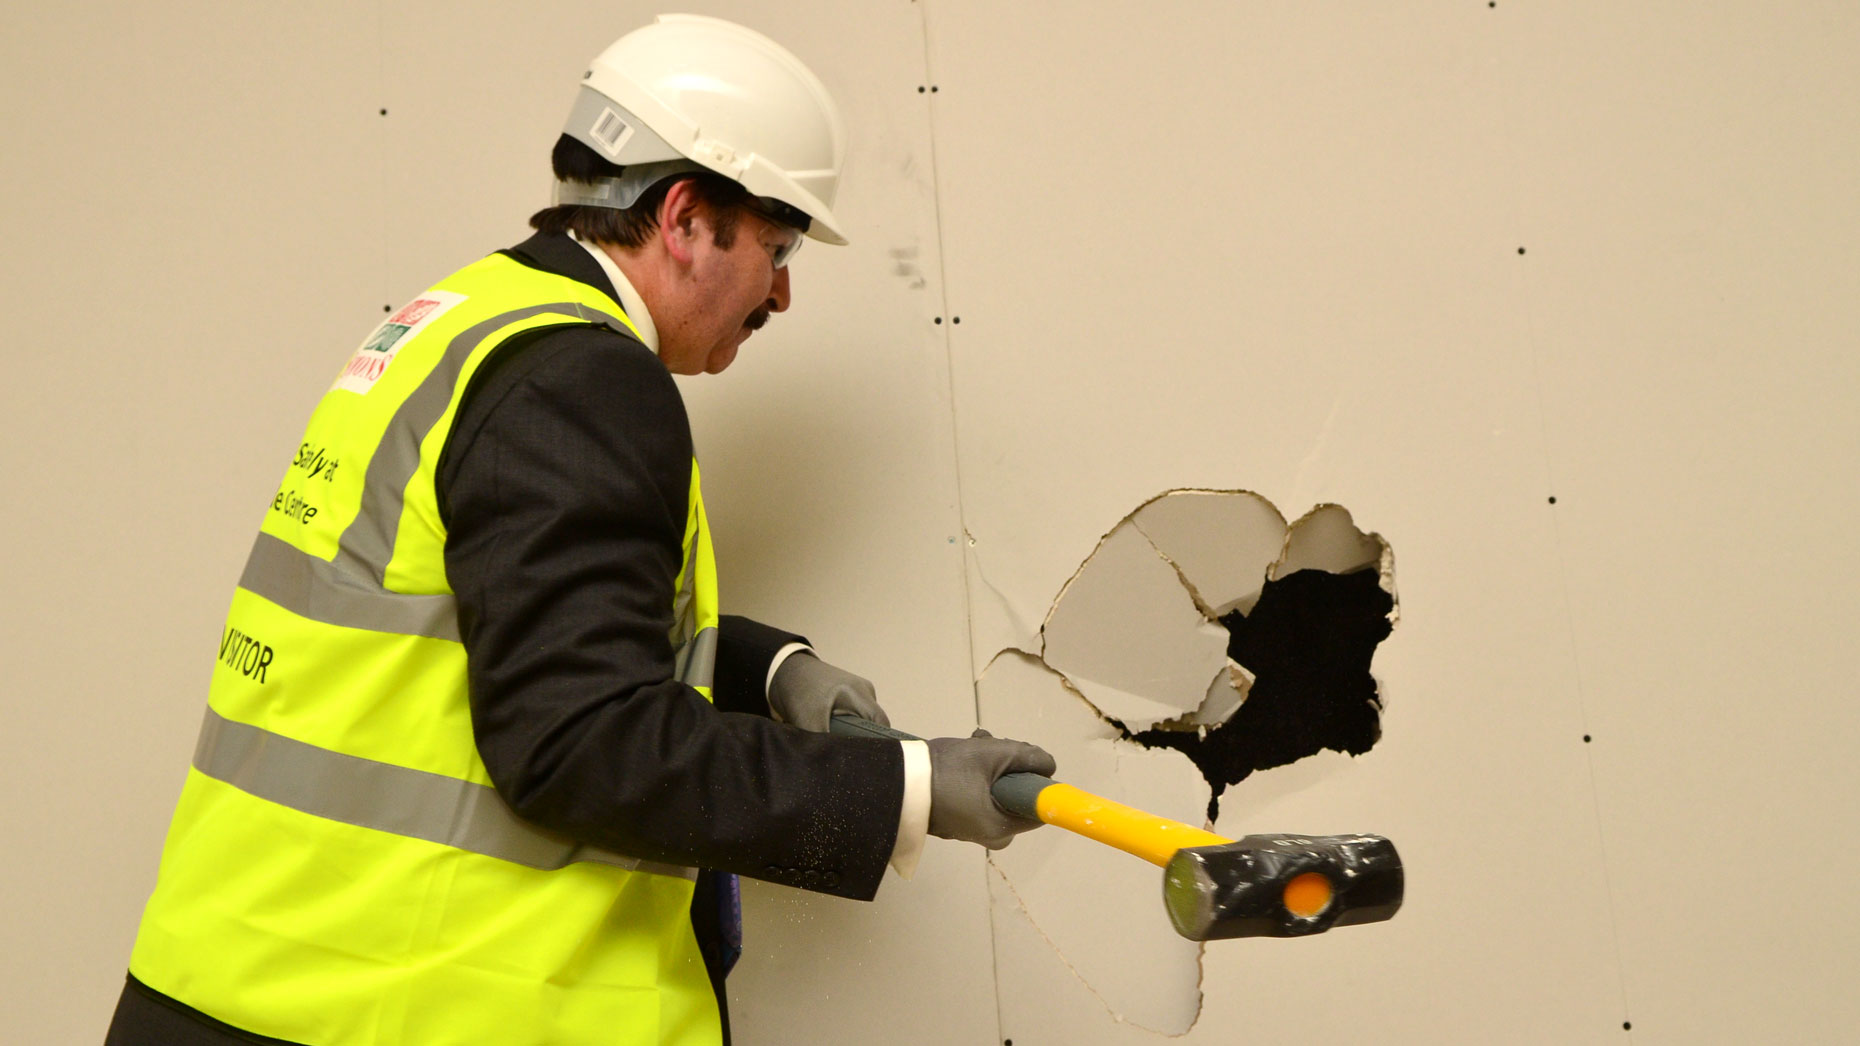 City of Lincoln Council Chief Executive, Andrew Taylor hammers a wall to inaugurate works at the Waterside. Photo: Steve Smailes for The Lincolnite